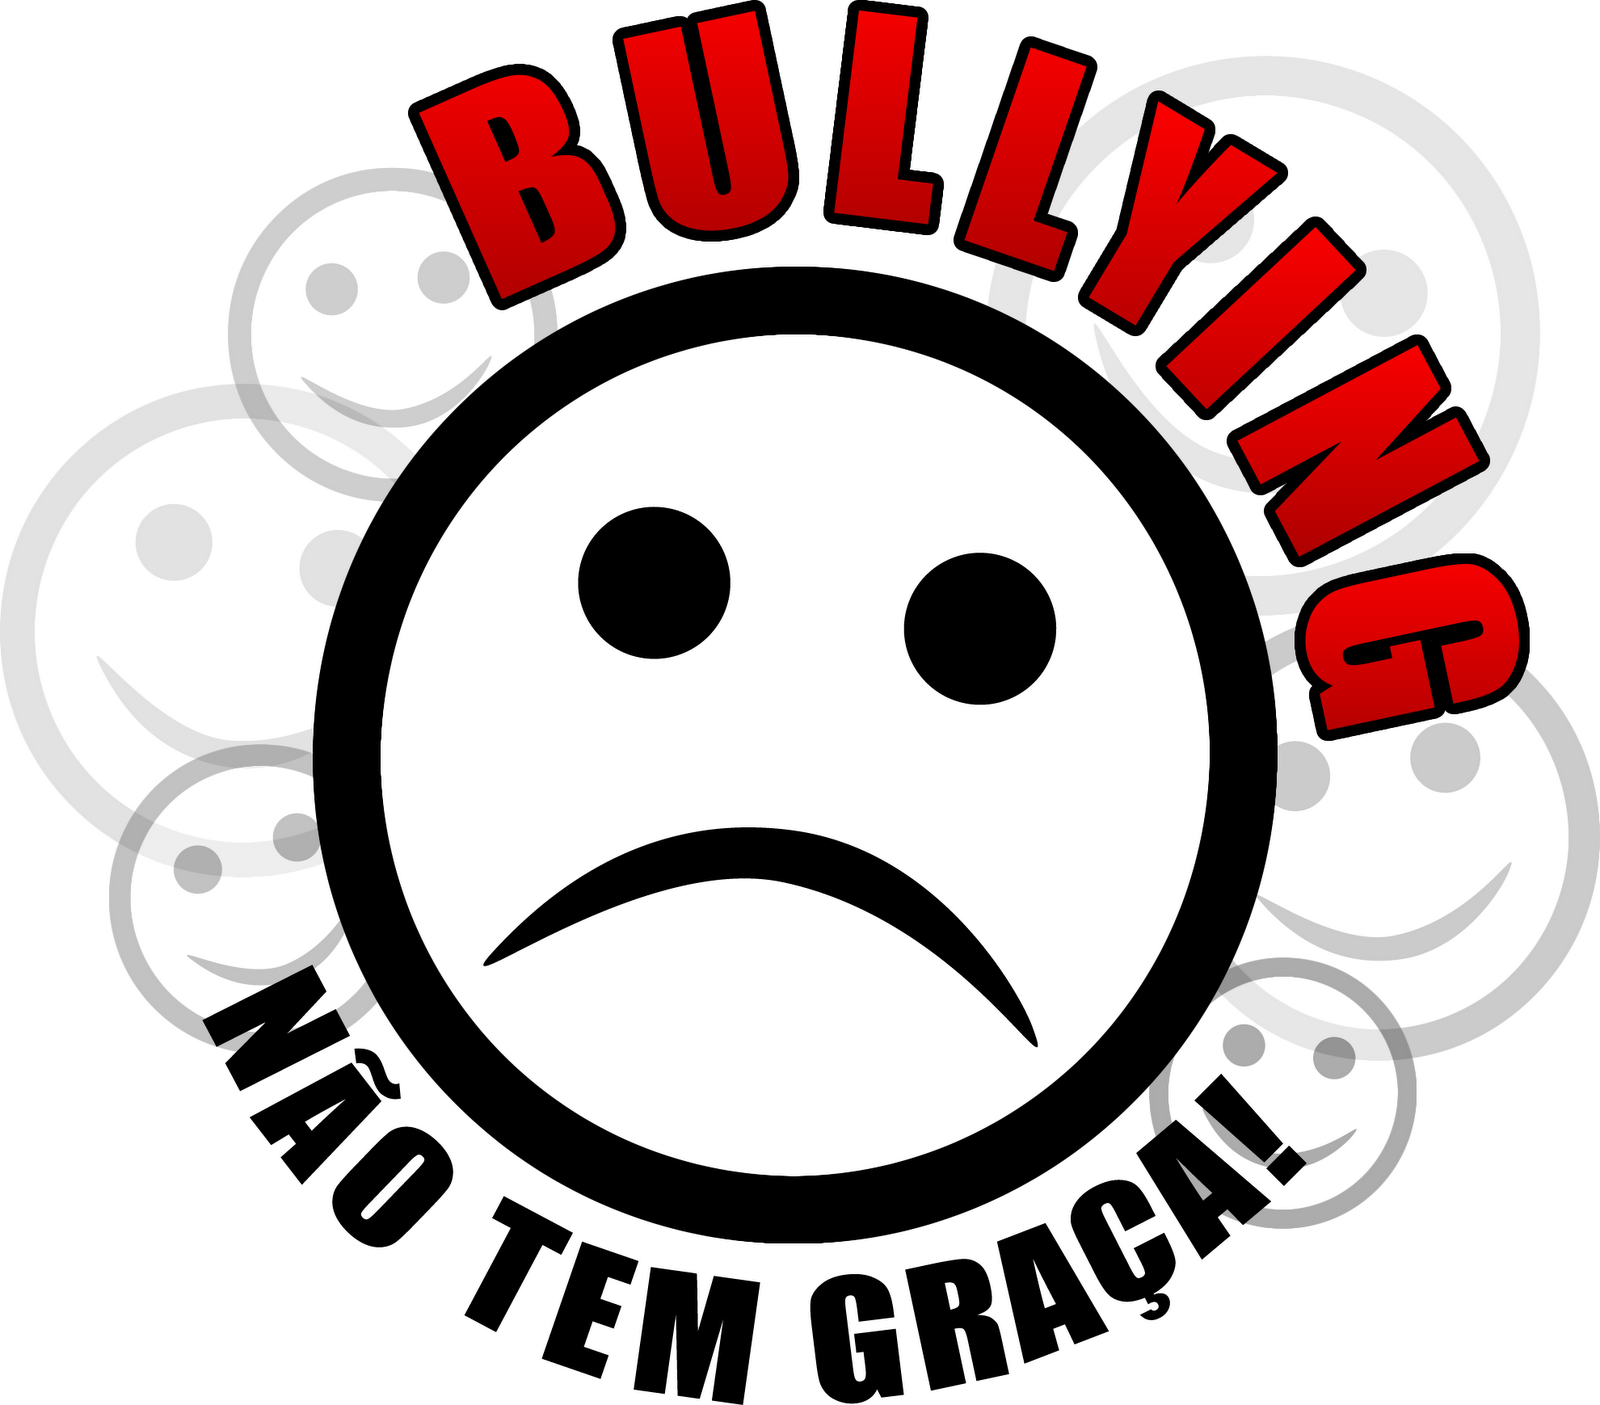 bullying cyp 3 3 Child development center (cdc) operating manual   and preventing teasing and bullying in preschool  navy cyp guidance and touch policy _____ 51 51.